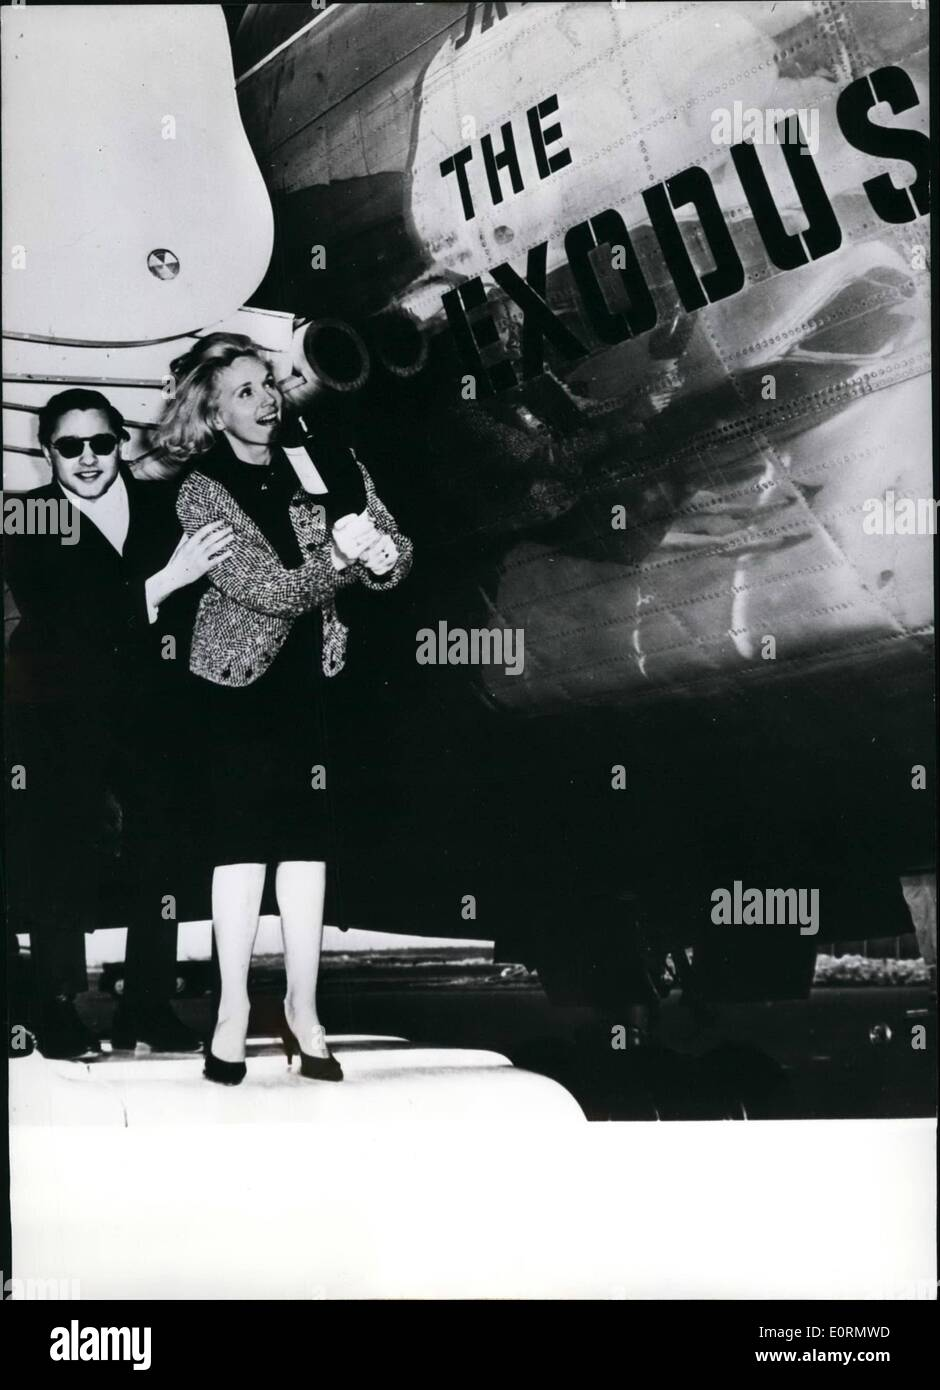 Mar. 03, 1960 - A yer-aeroplane of the Israel air-company E1-A1 was named ''Exodus'': The American teenager-idol Sal Minea named the E1-A1 yet-aroplane in New York ''Exodus''. Together with him Eva Maria Saint. Both have a part in the Otto-Preminger film '' EXODUS''. After the ceremony both actors entered the machine and flew to Israel where the films-works begin on March 28th - Stock Image